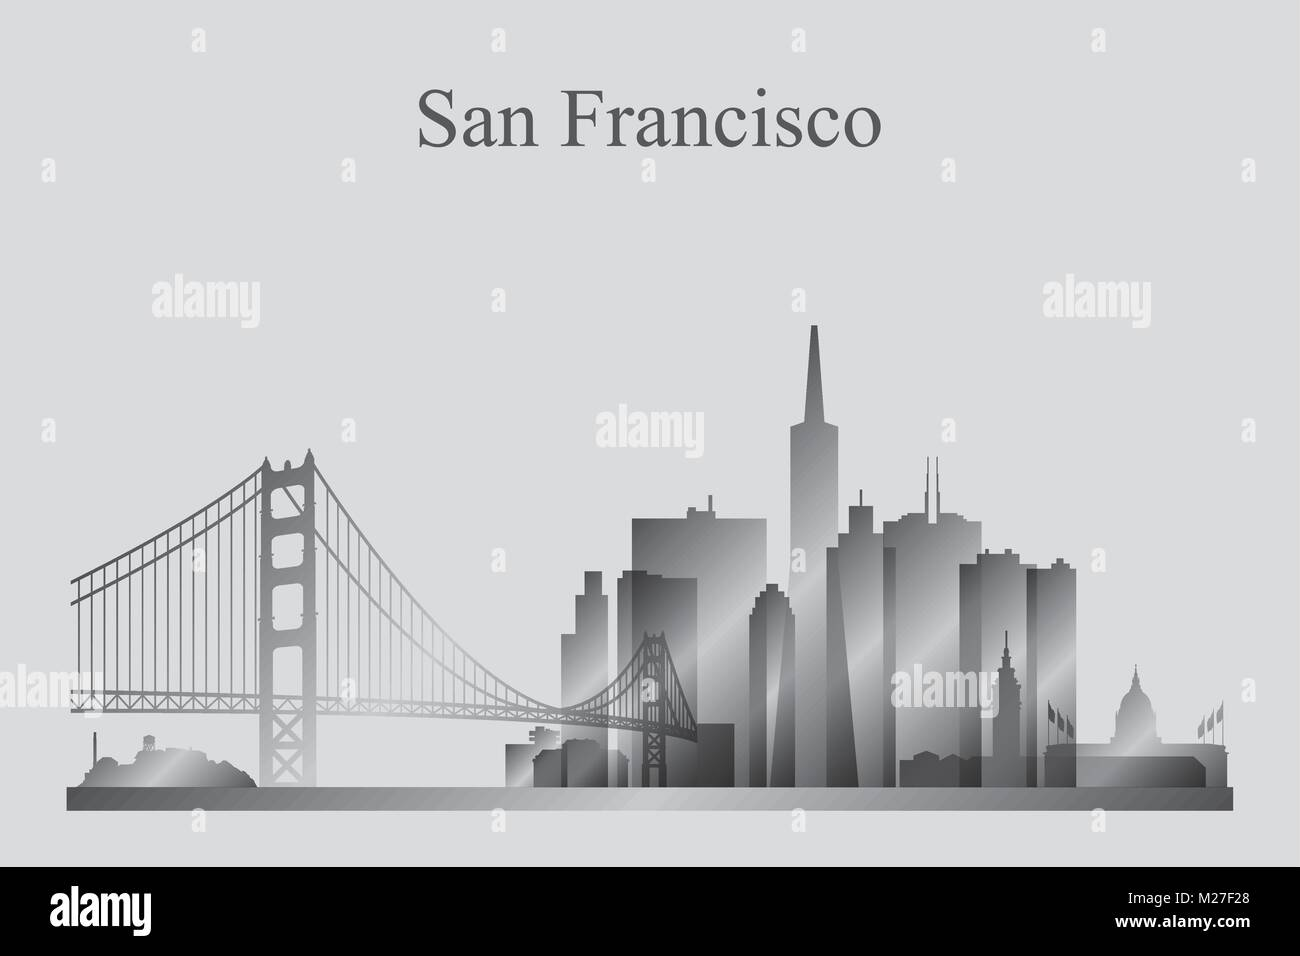 San Francisco Stadt Skyline Silhouette in Graustufen, Vektor-illustration Stockbild